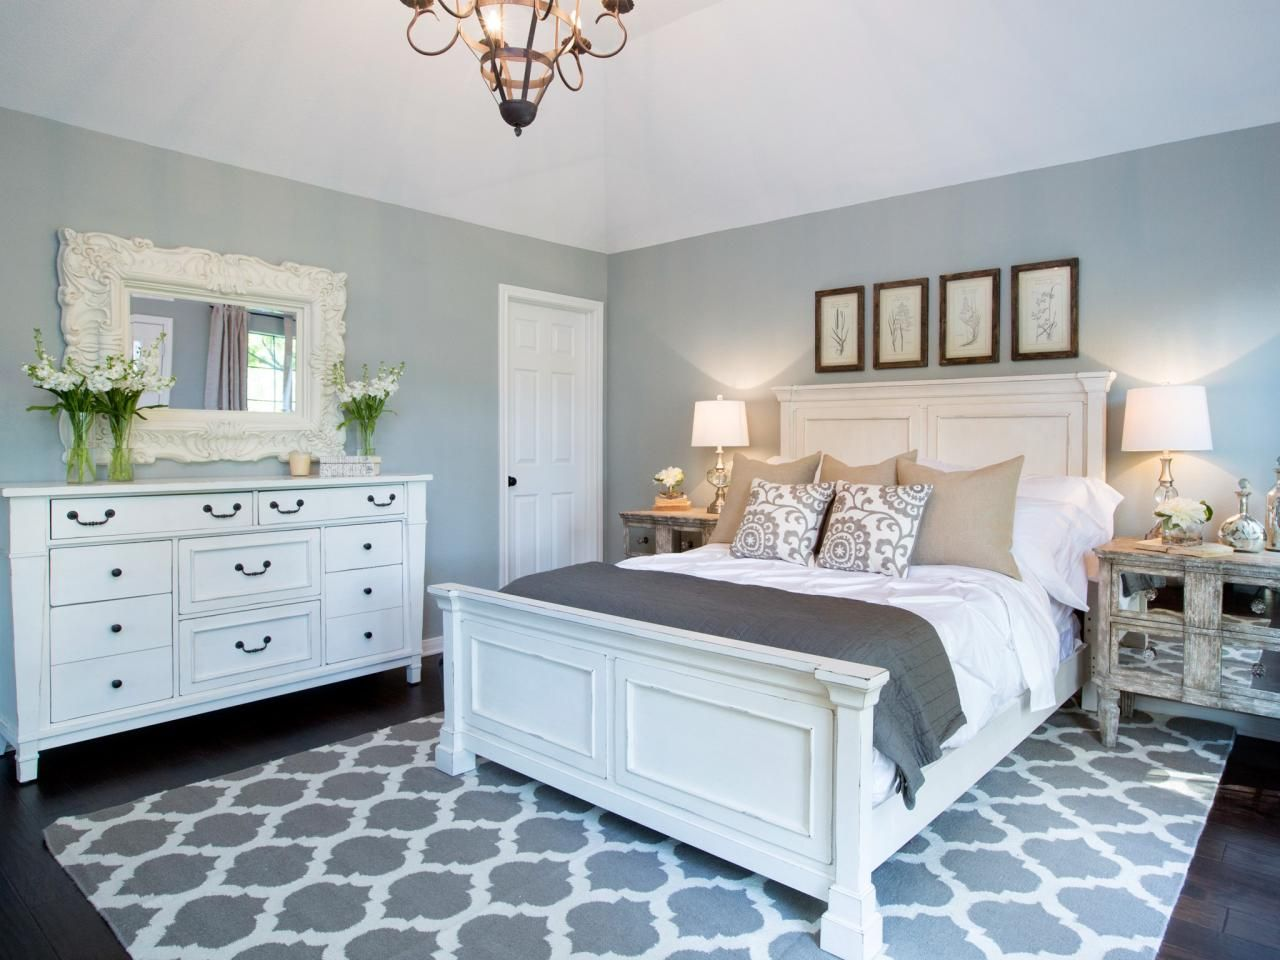 Chip And Joanna Gaines Farmhouse Google Search Master Bedroom Furniture Ideas Set